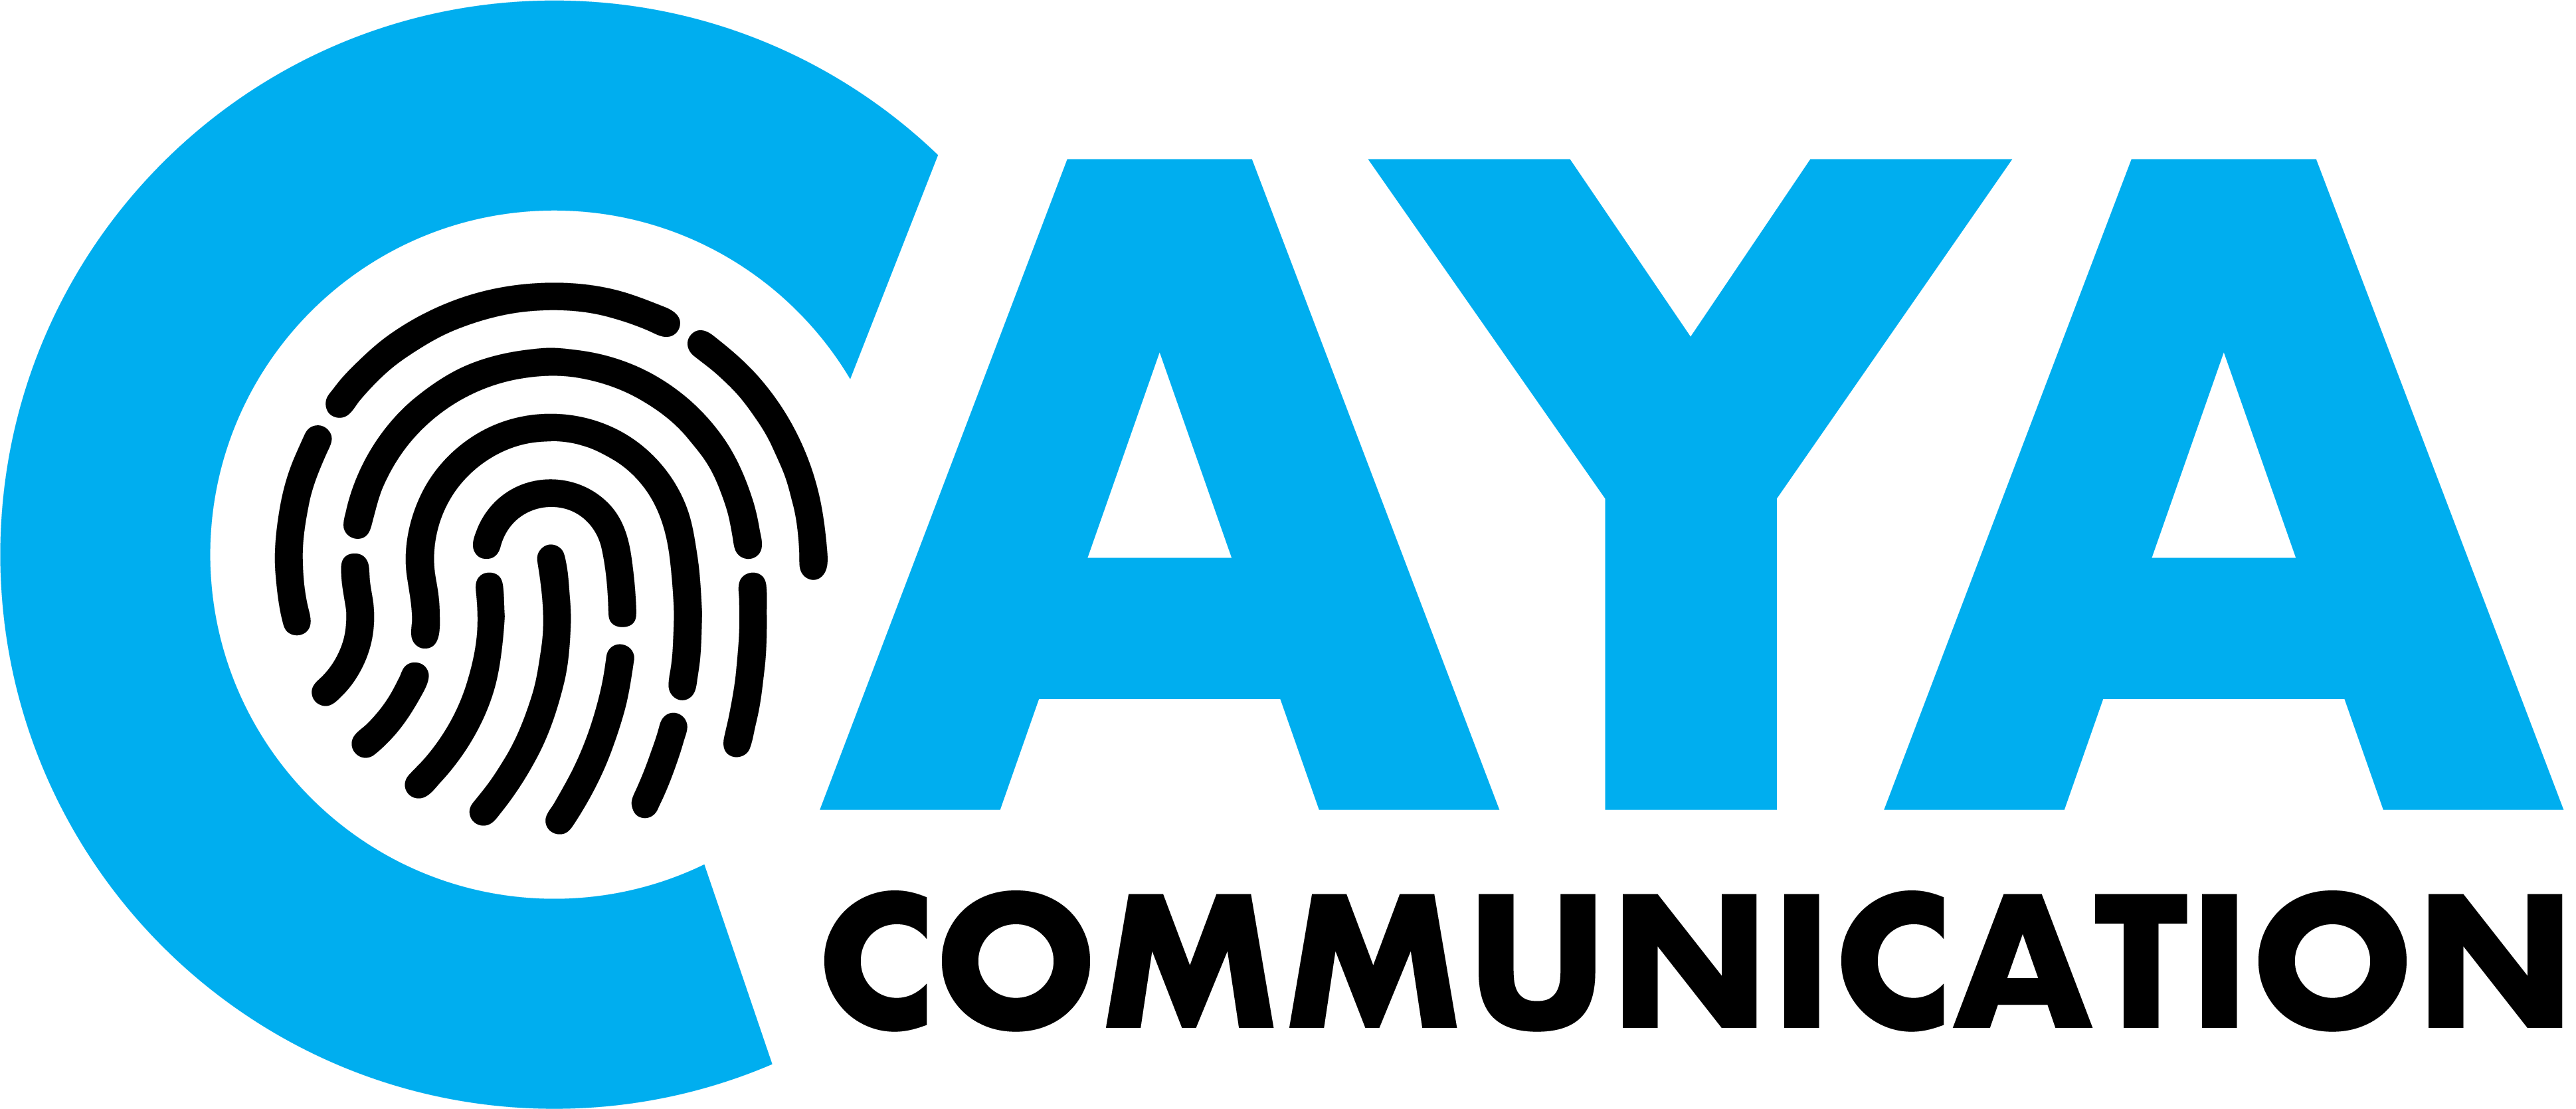 CAYA Communication